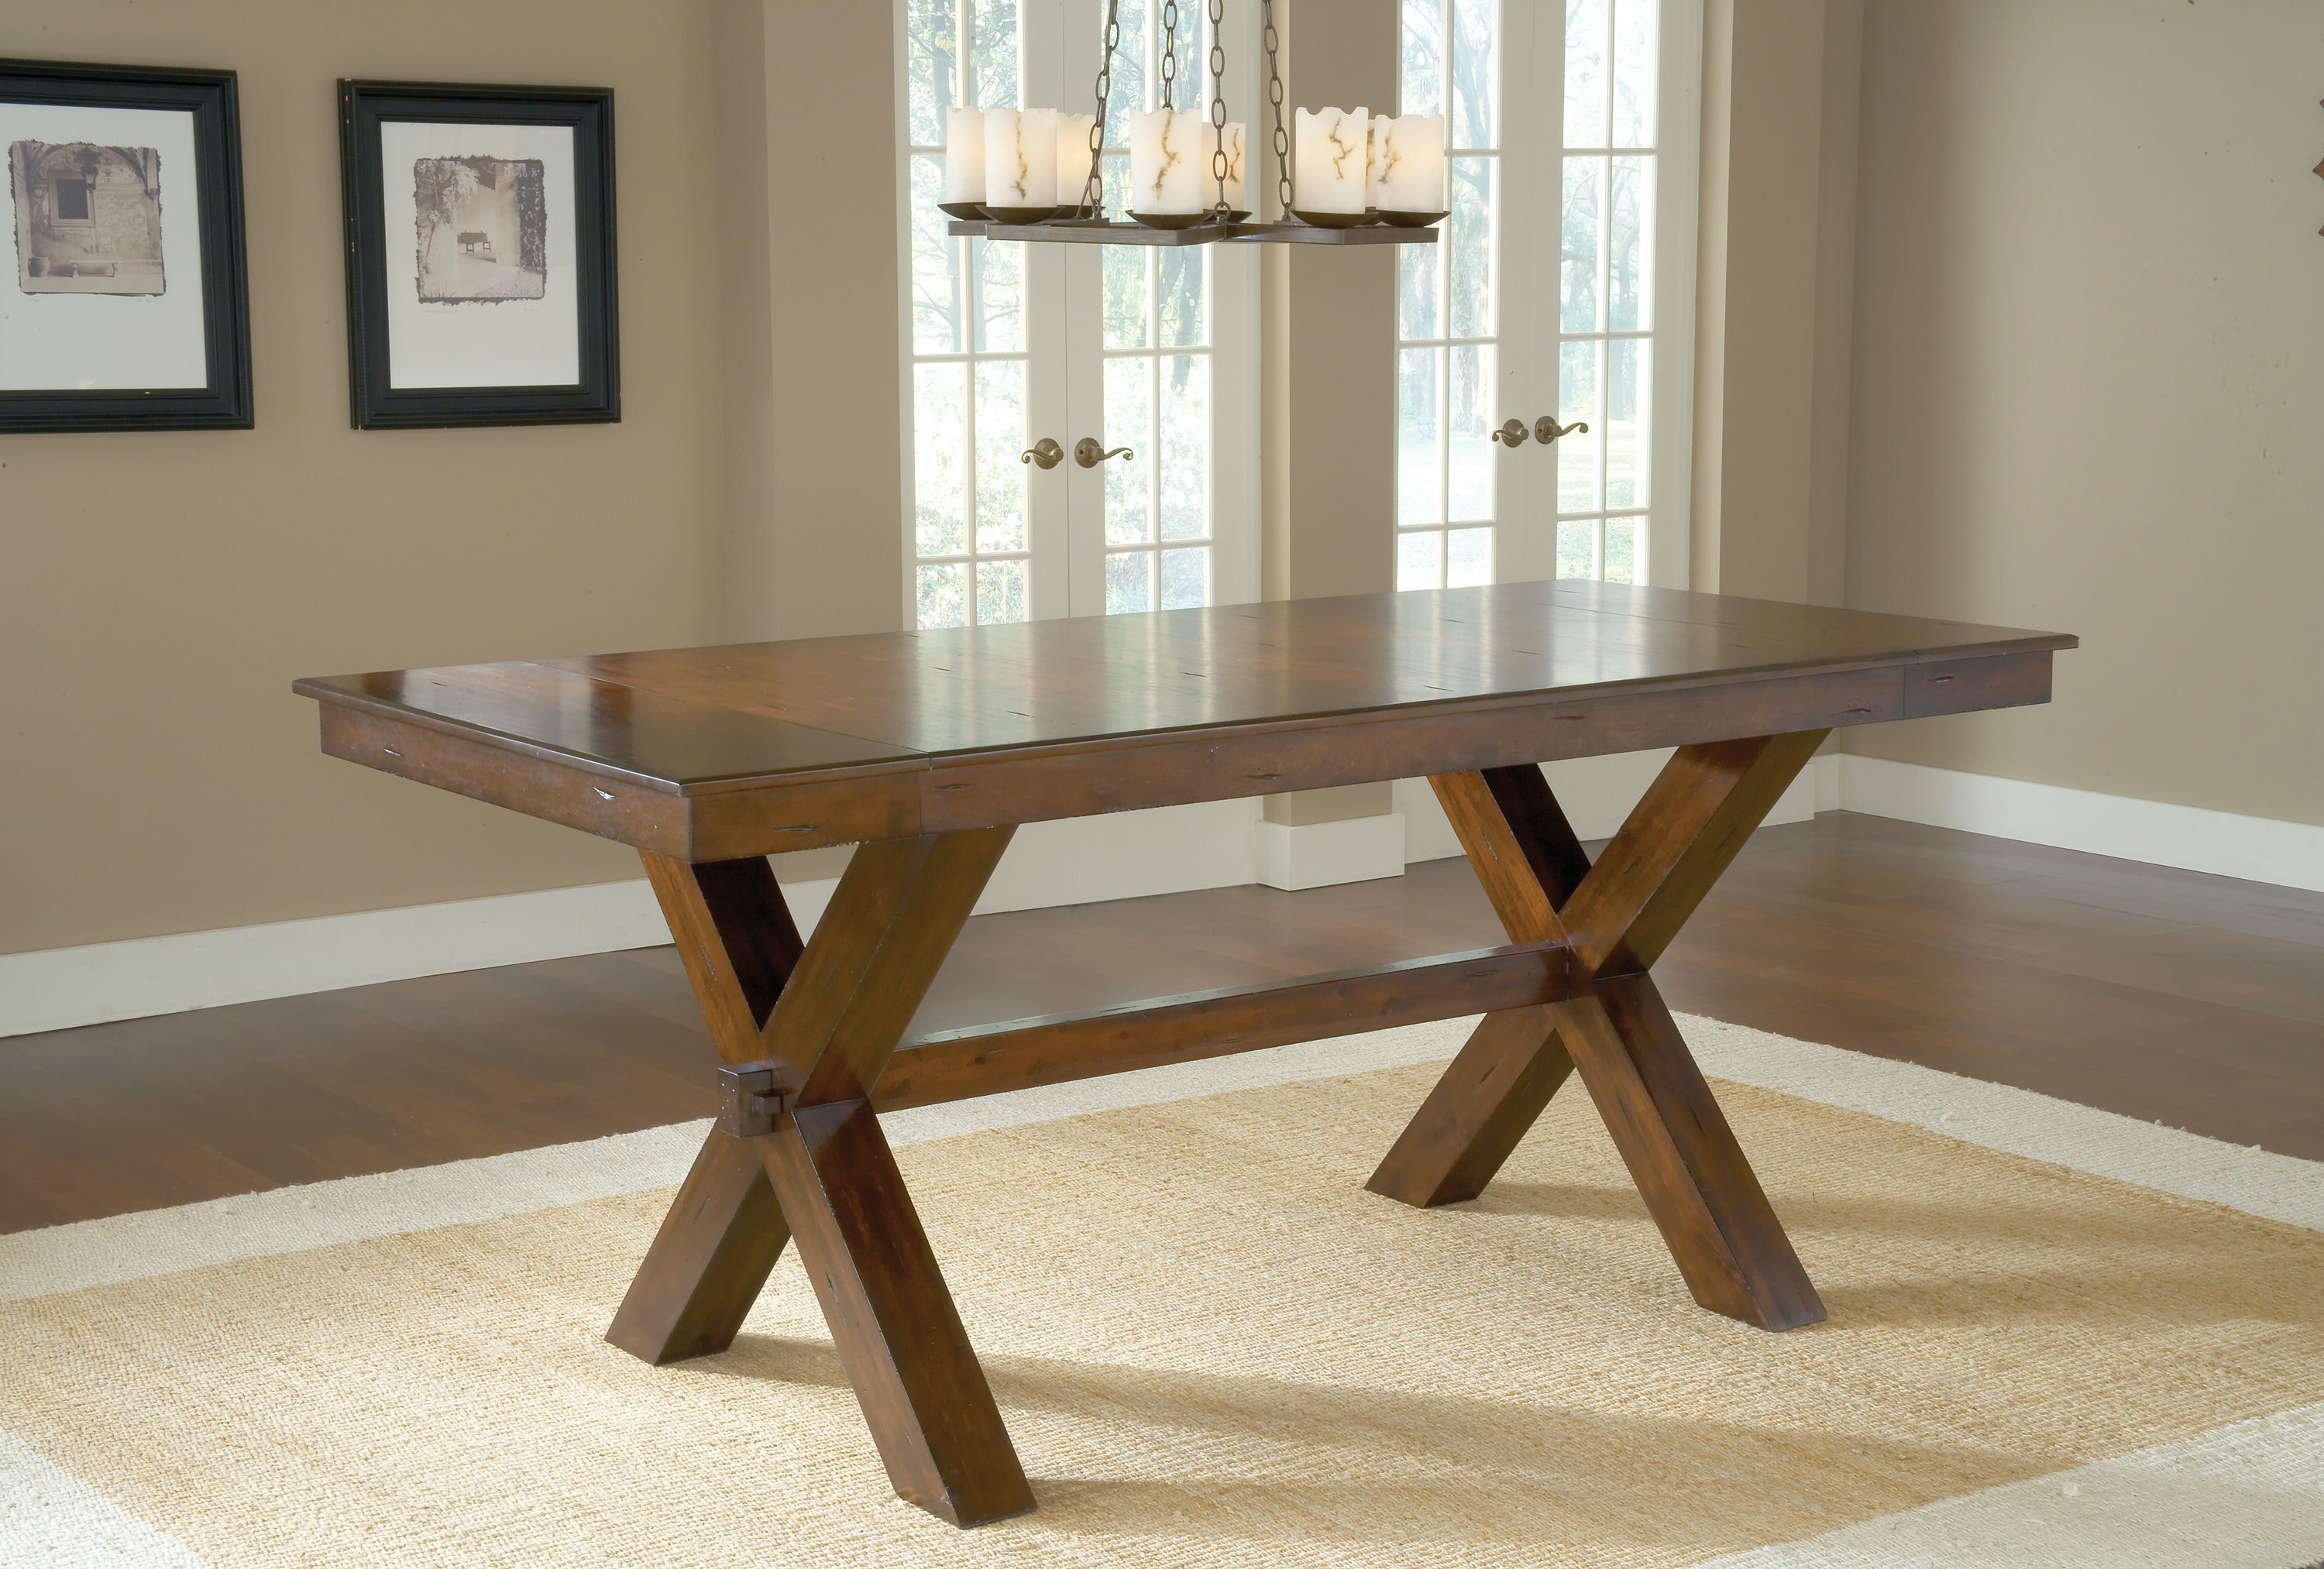 Charmant Hillsdale Furniture Bar And Game Room Park Avenue Counter Height Trestle  Dining Table   Base 4692 836 At D Noblin Furniture